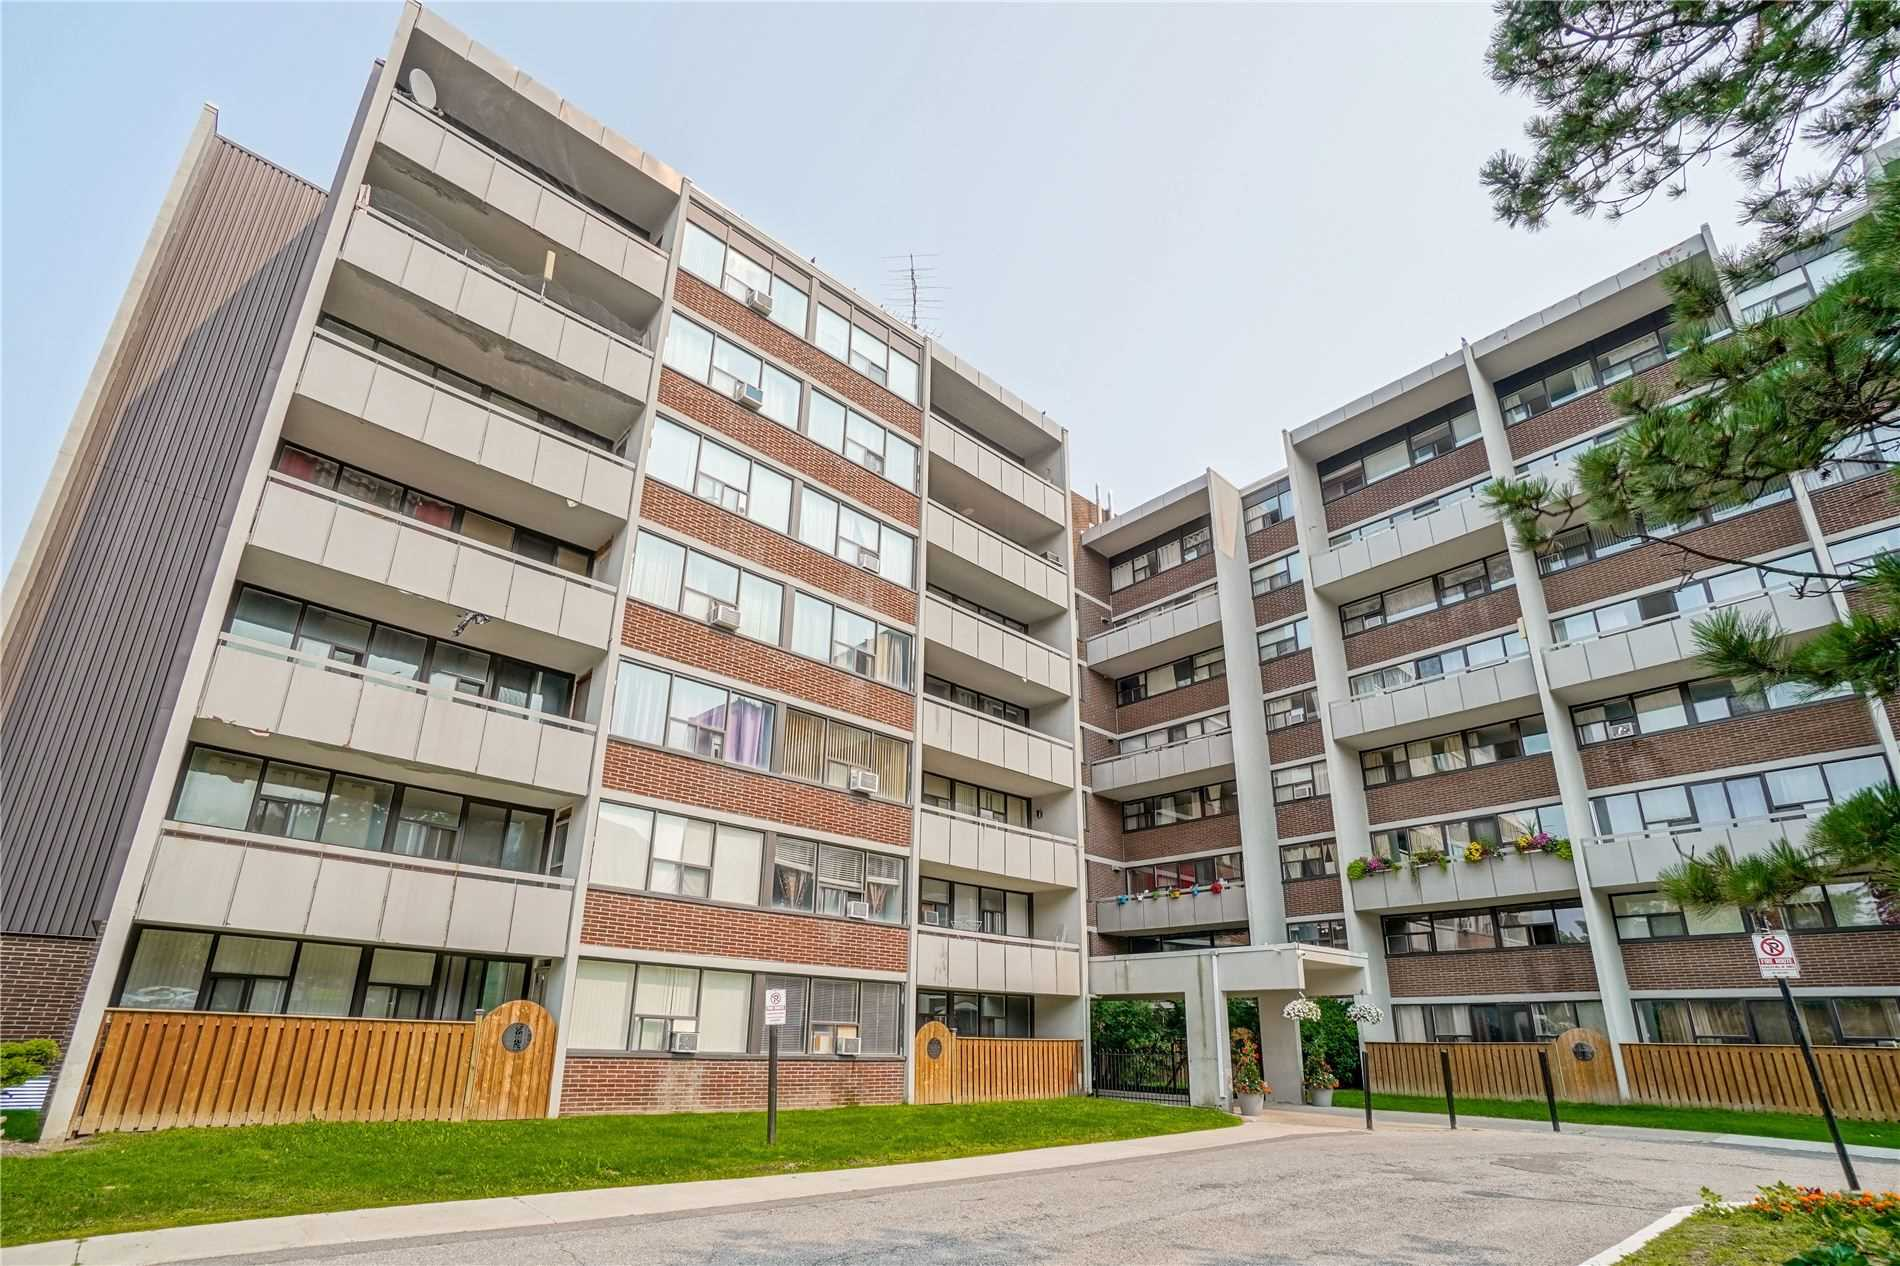 Condo Apt For Sale In Mississauga , 2 Bedrooms Bedrooms, ,1 BathroomBathrooms,Condo Apt,For Sale,728,Roche